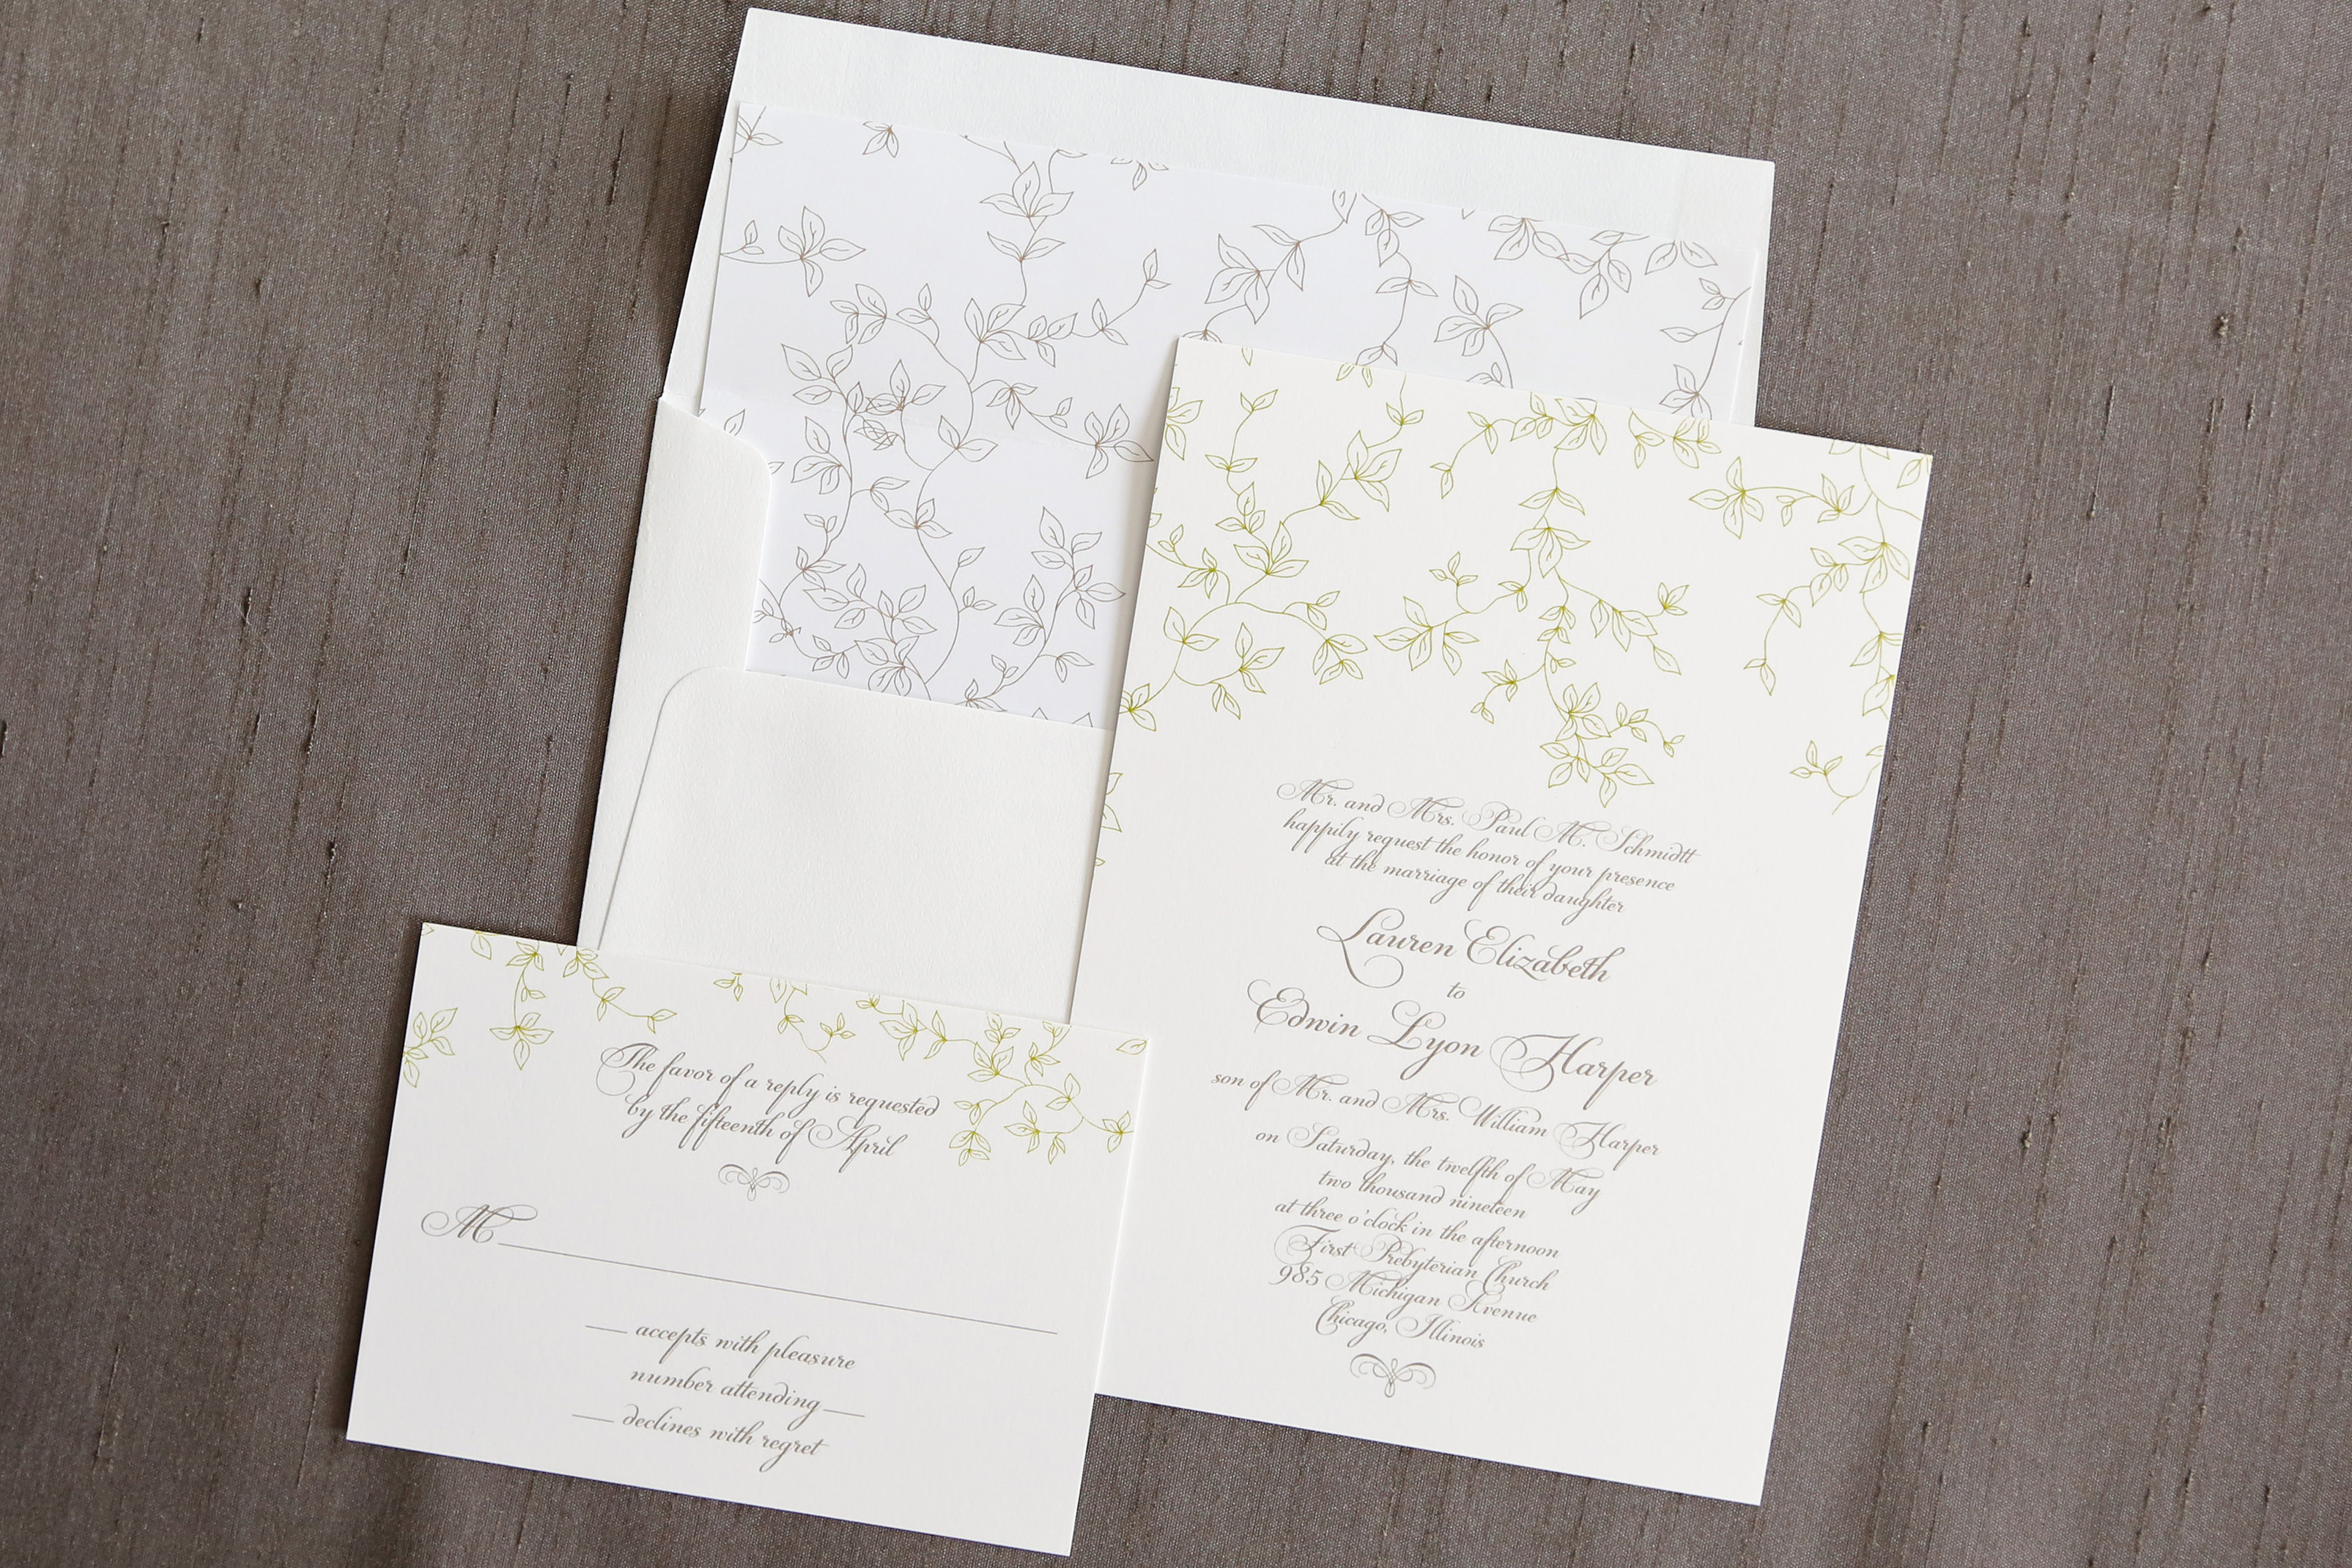 This 2-color thermography wedding invitation is delicate and ethereal.